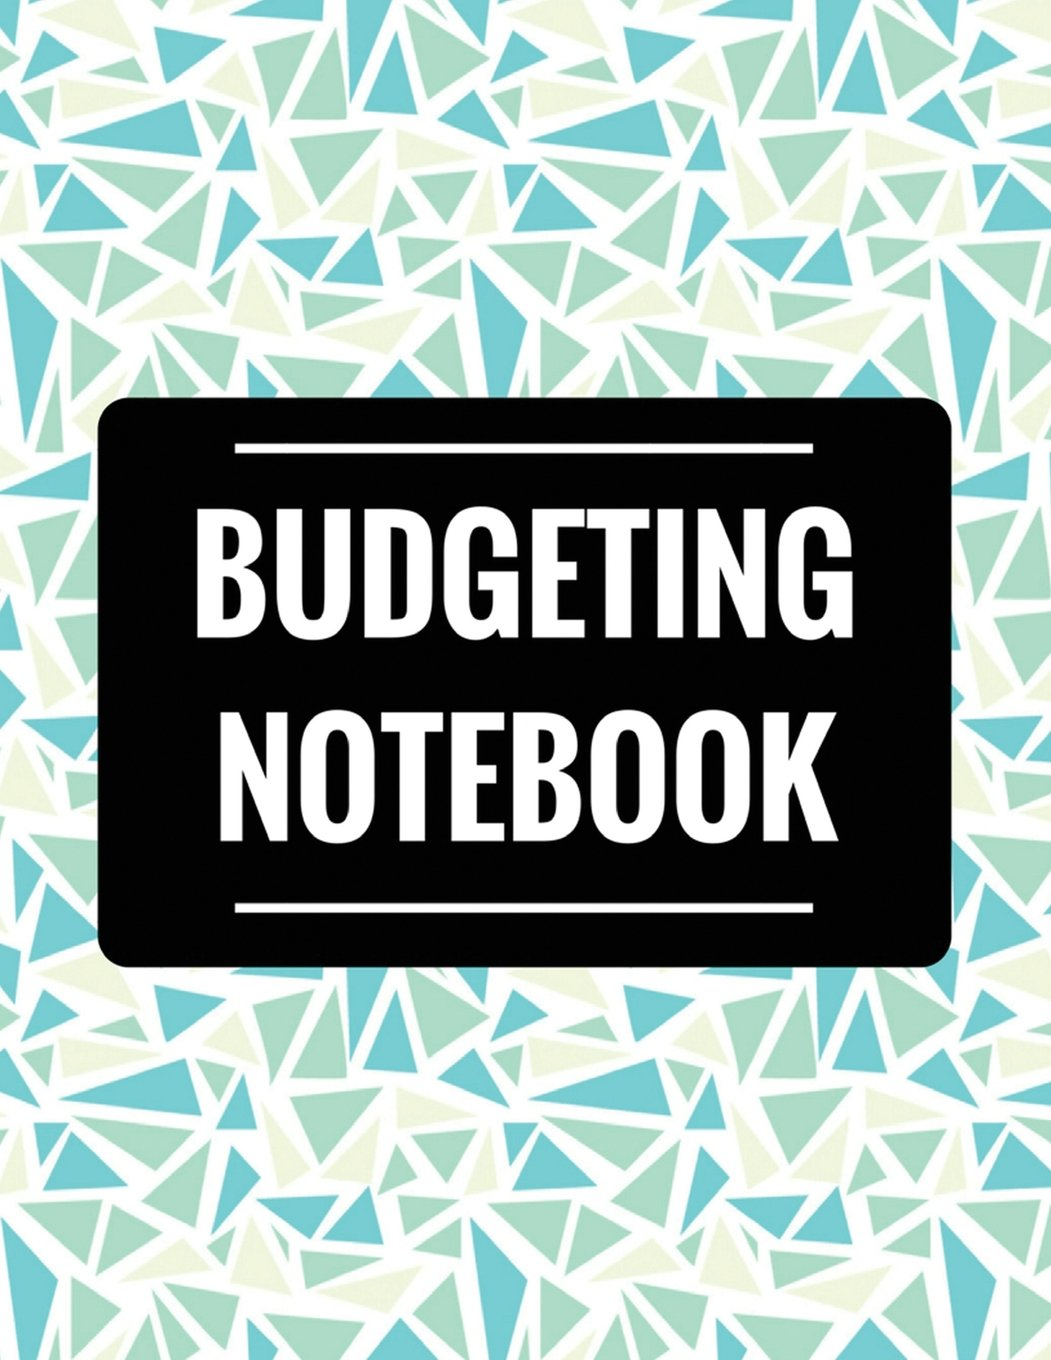 Budgeting Notebook: Weekly Expense Tracker Bill Organizer Notebook Business Money Personal Finance Journal Planning size 8.5x11 Inches Extra Large (Expense Tracker Budget Planner) (Volume 1) ebook